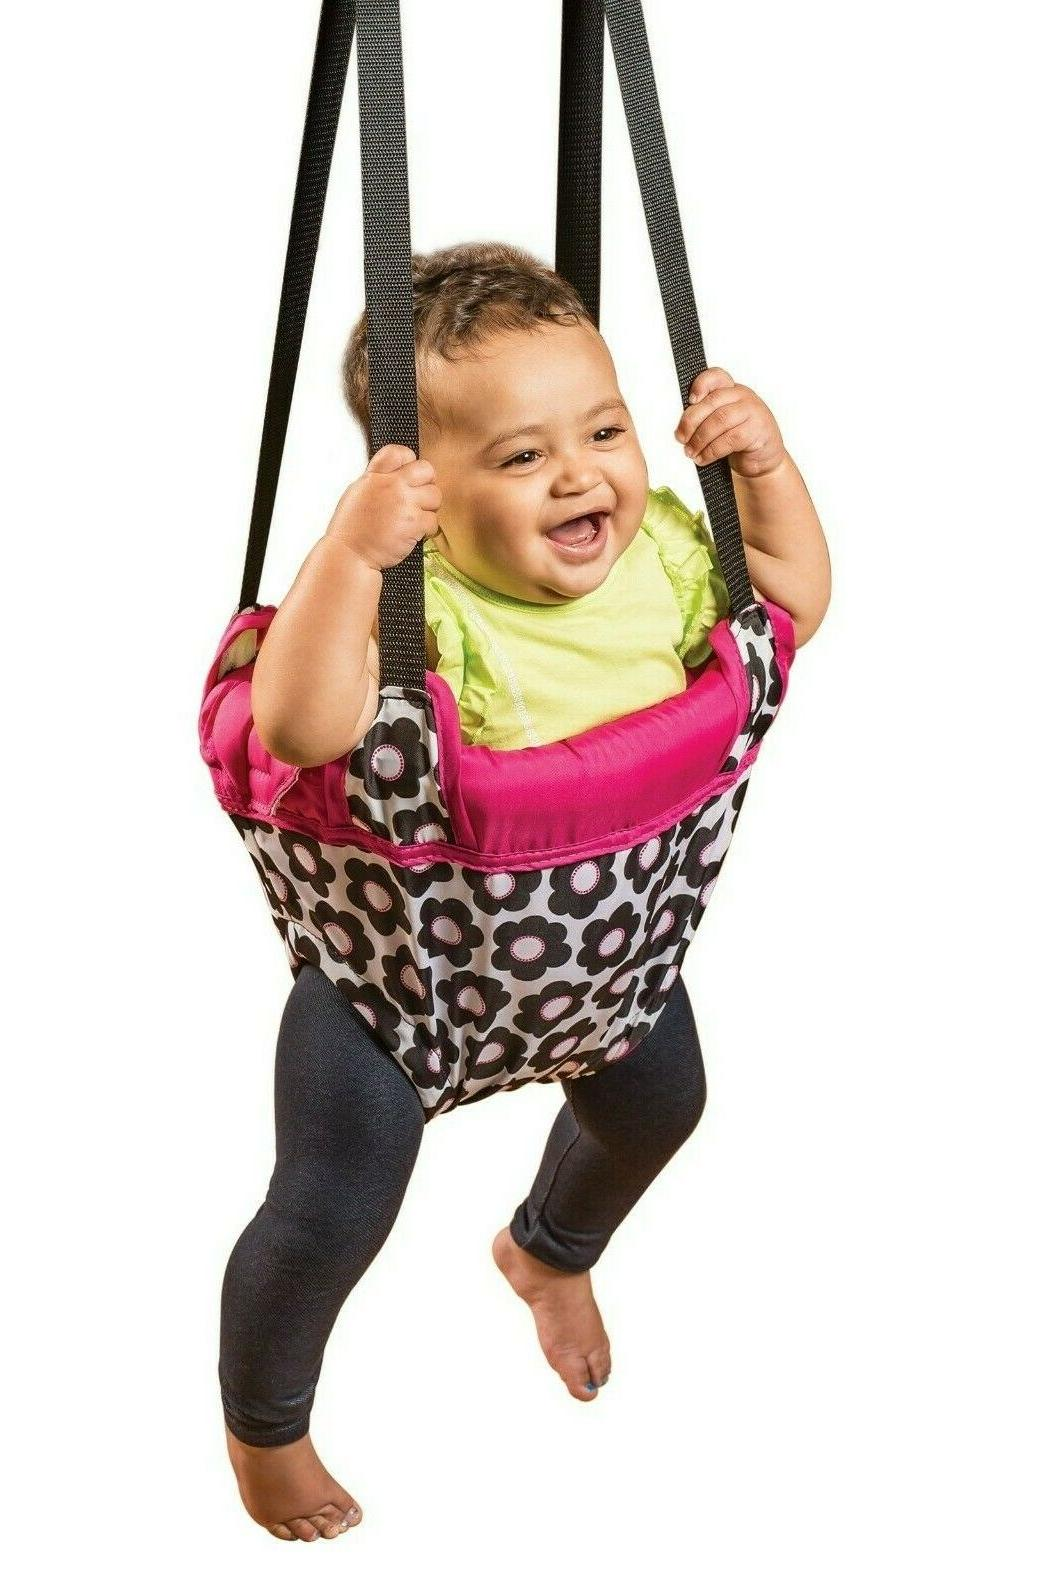 Evenflo Jumper Bouncer Swing Girls Pink with Flowers 4 Mths+